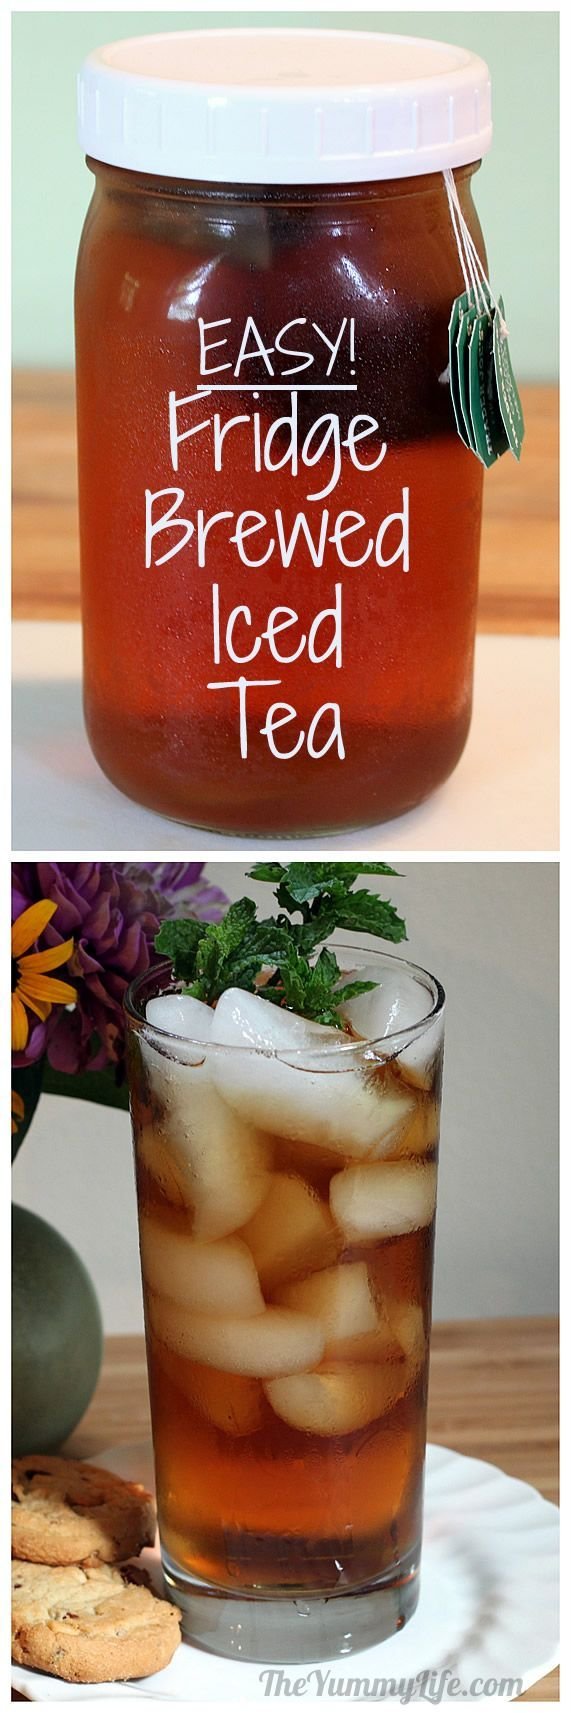 How to Make Refrigerator Iced Tea. No boiling--easy and healthy! Smooth taste without bitterness. TheYummyLife.com